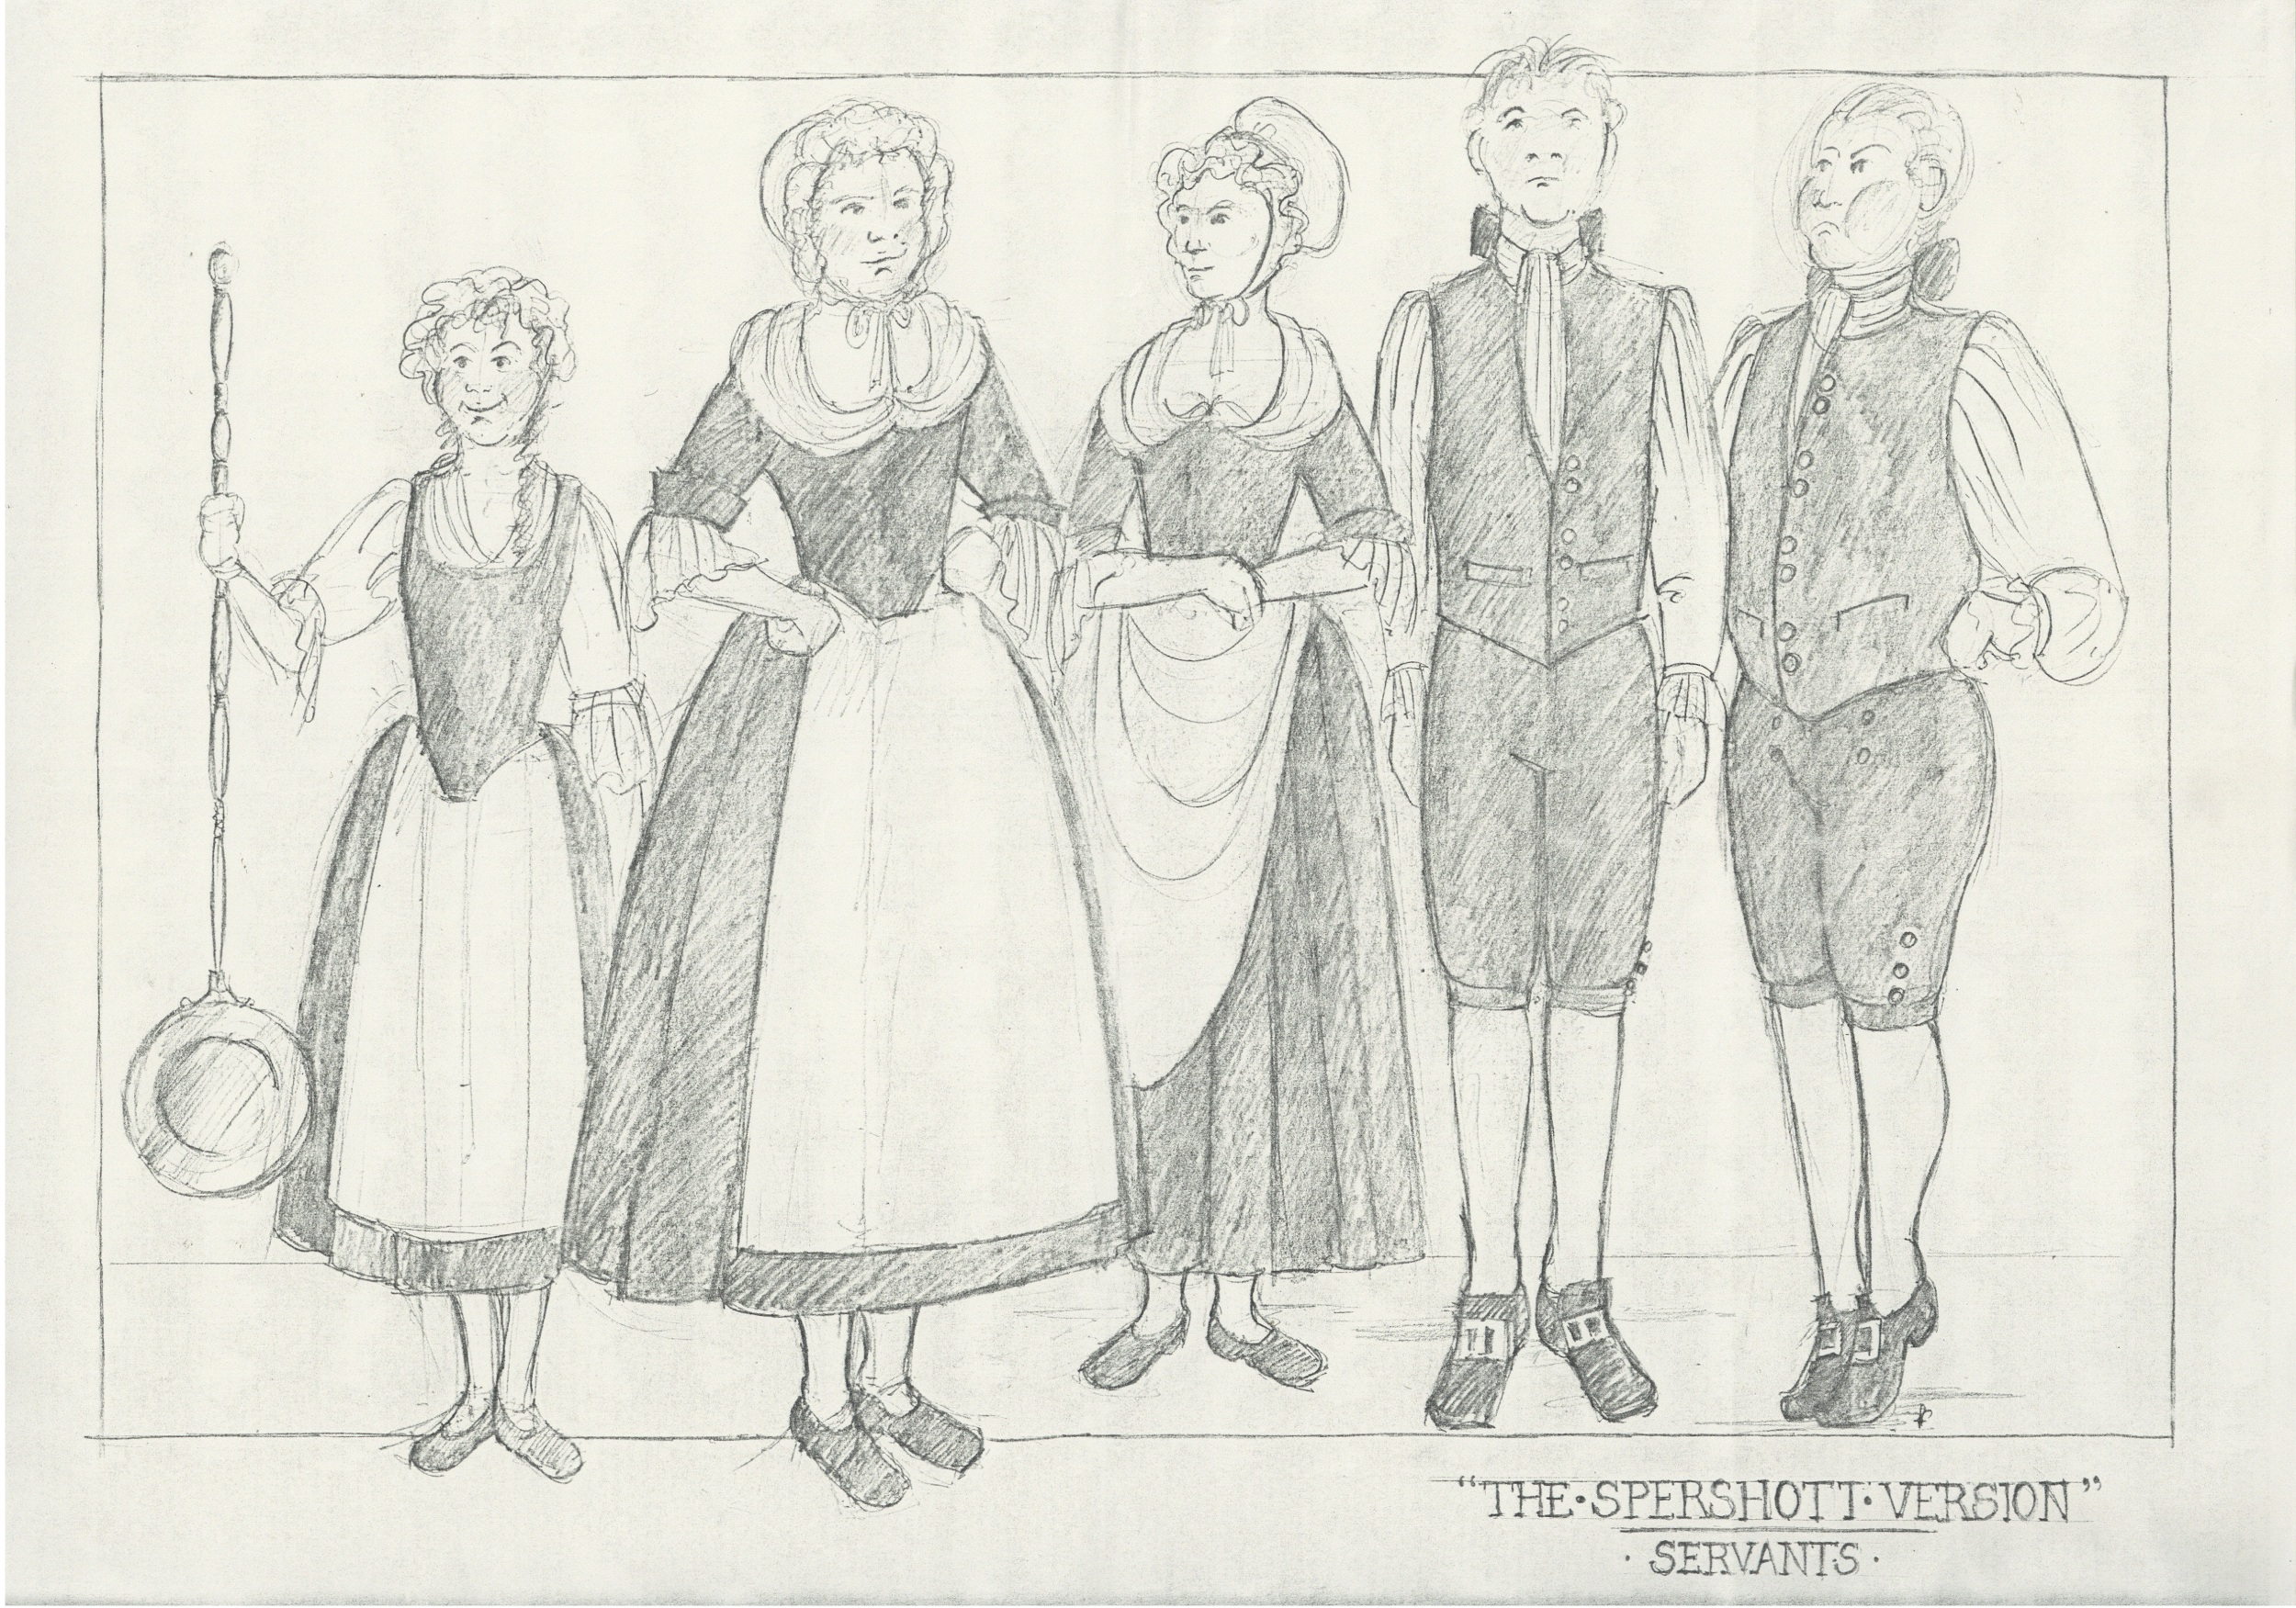 The Spershott Version 1986 Costume designs servents